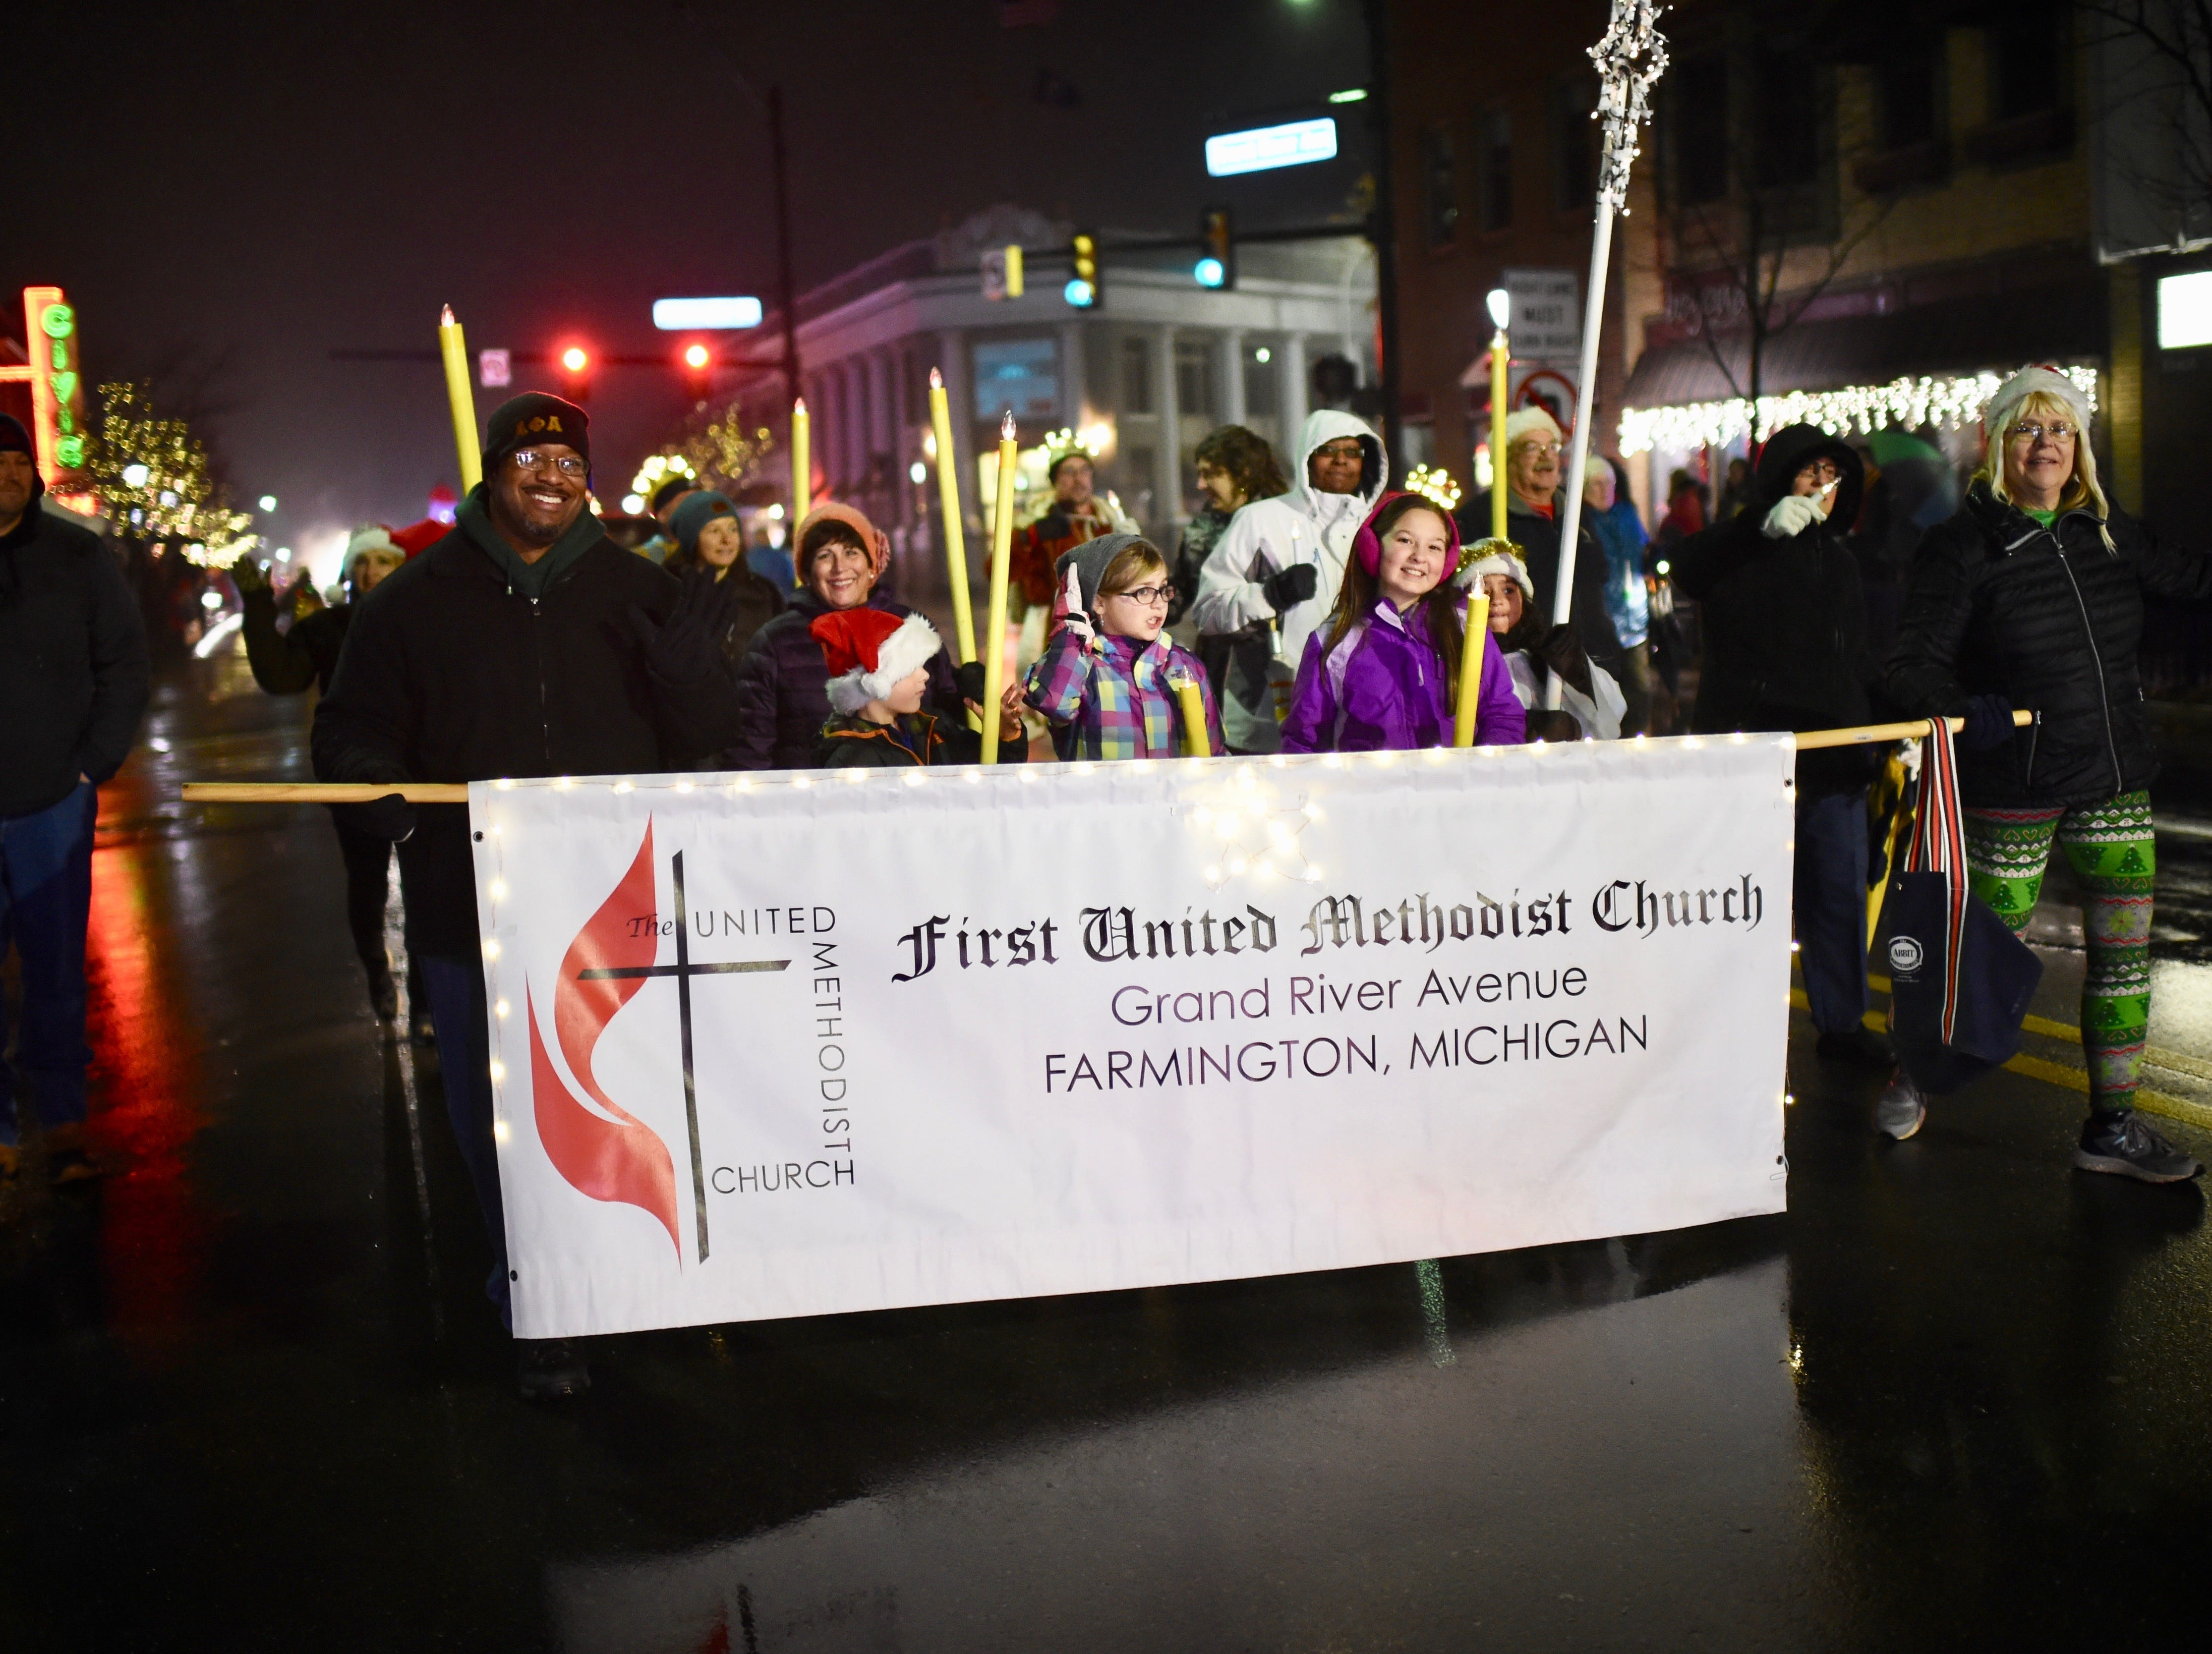 First United Methodist Church members were all smiles as they took part in the annual Holly Days Parade.